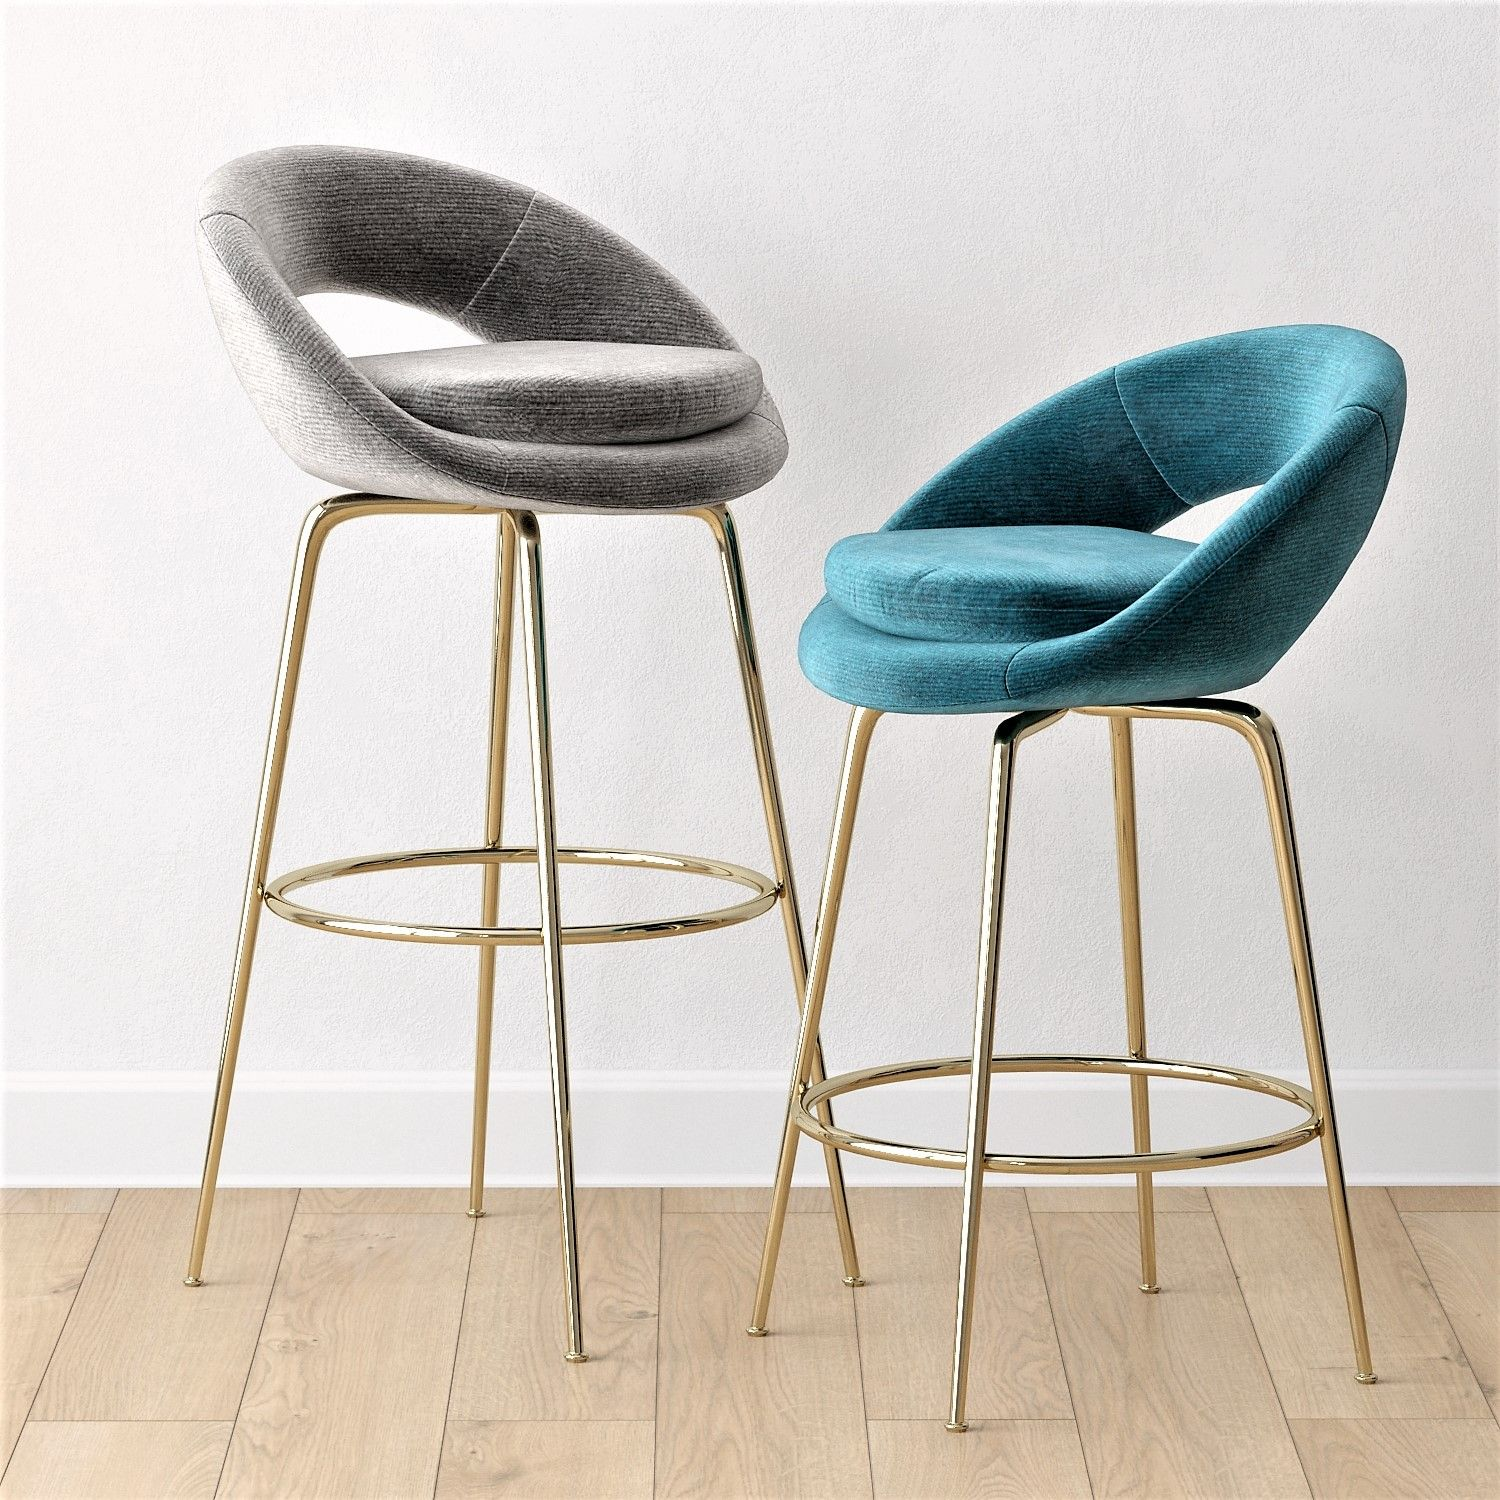 Enjoyable 3D Model West Elm Orb Dining Chair In 2019 Furniture Gmtry Best Dining Table And Chair Ideas Images Gmtryco